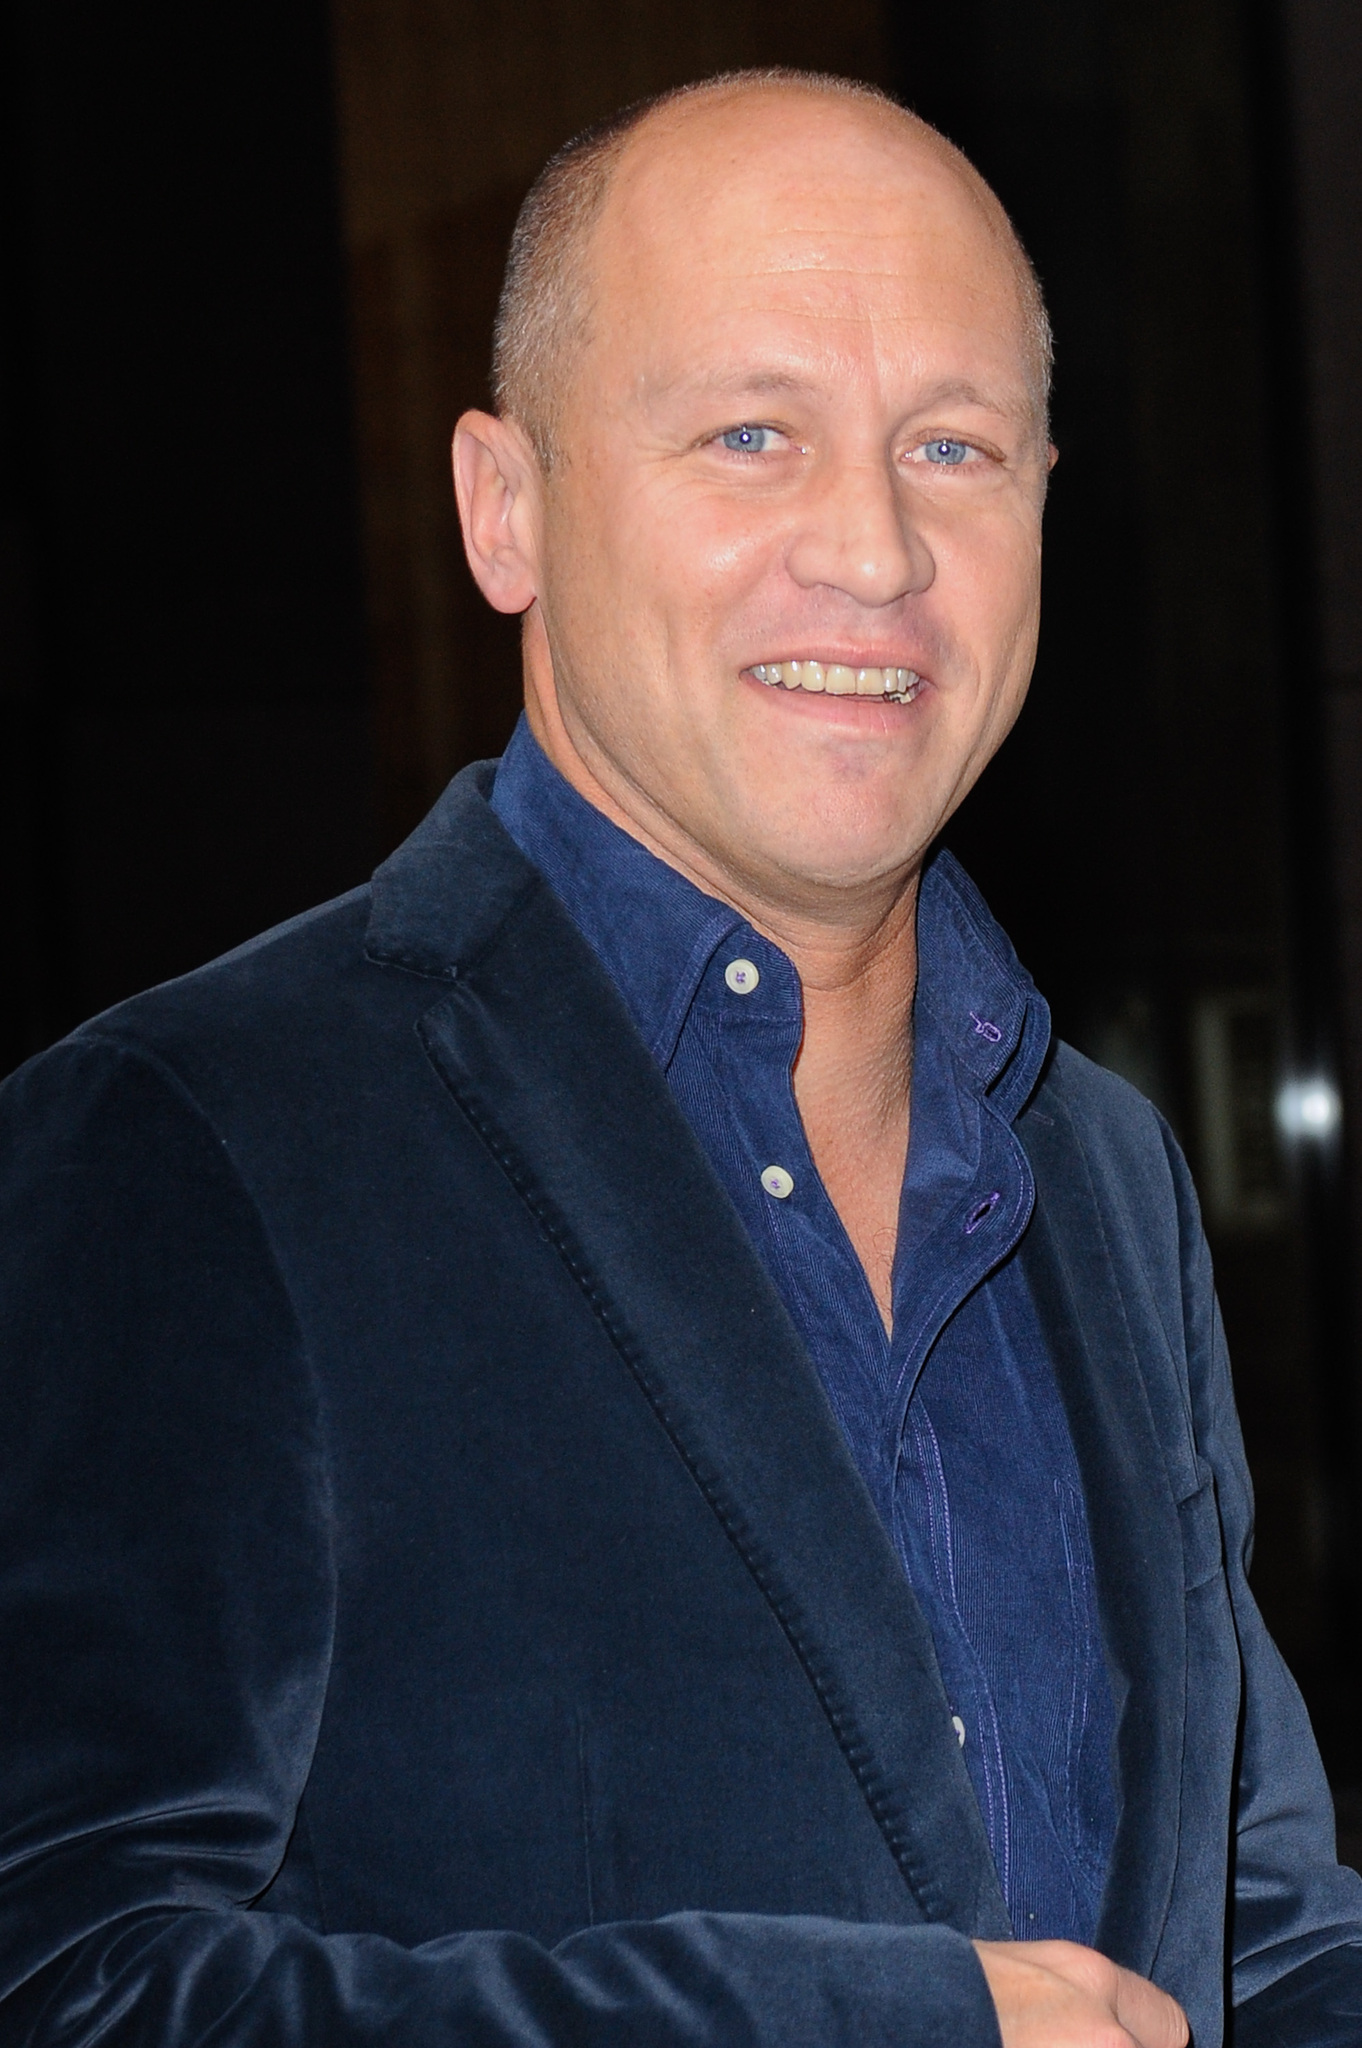 The 57-year old son of father (?) and mother(?) Mike Judge in 2020 photo. Mike Judge earned a  million dollar salary - leaving the net worth at  million in 2020